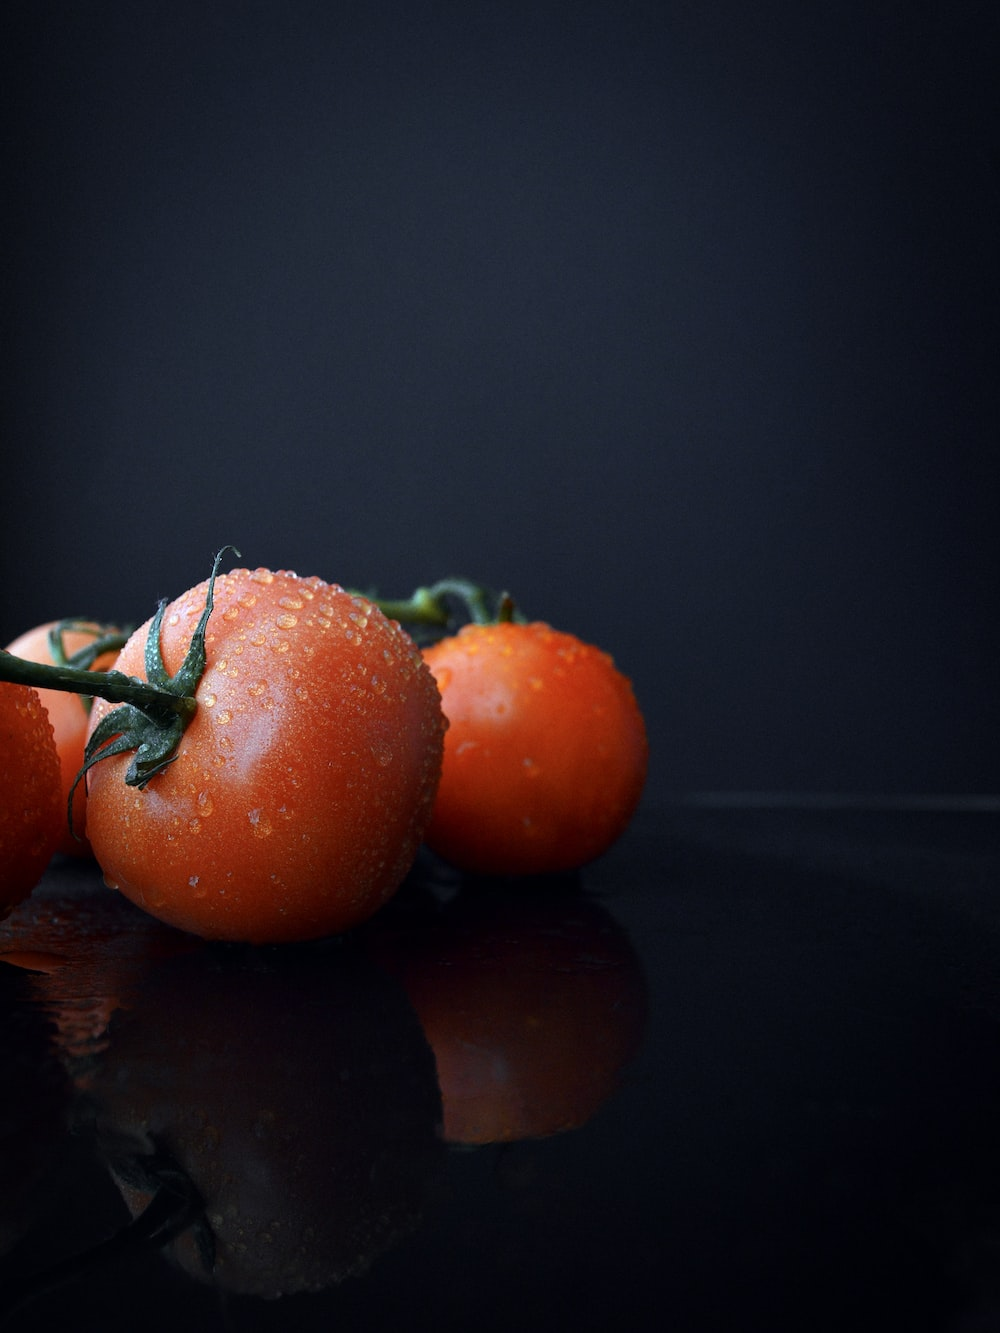 closeup photography of tomatoes